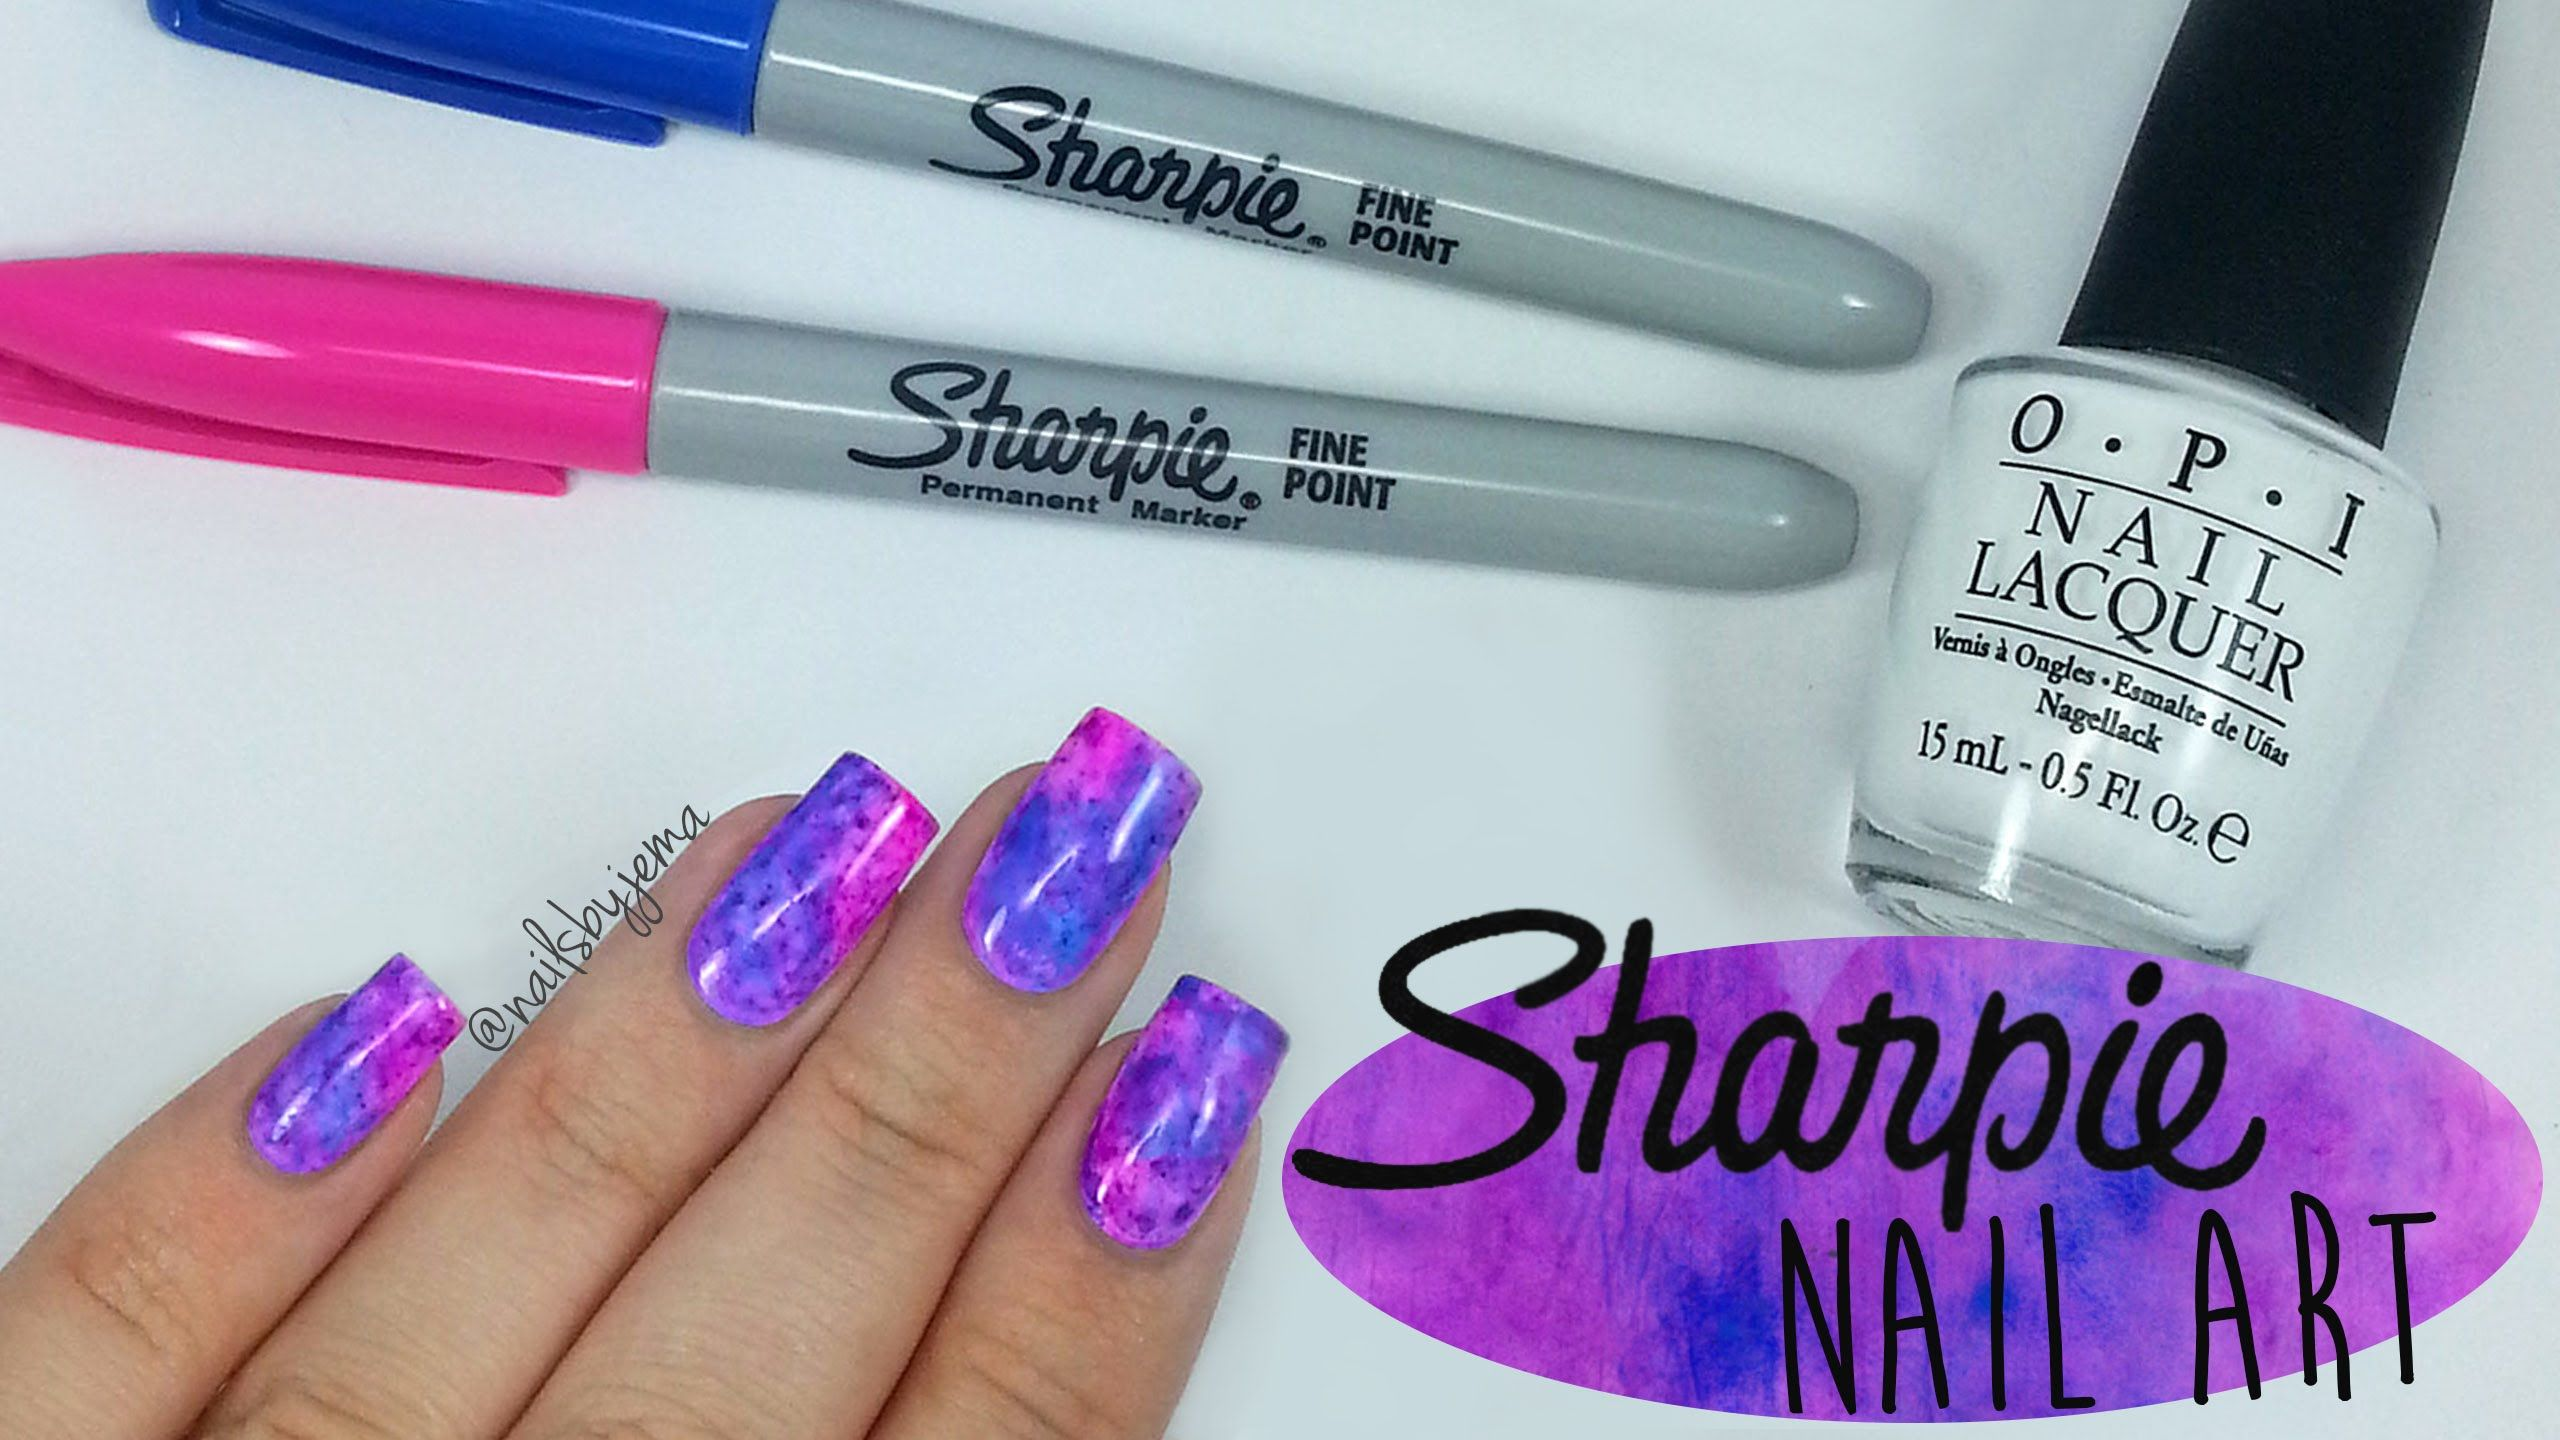 Sharpie Watercolour Nail Art Mix Sharpie With Rubbing Alcohol To Create Watercolor Quot Paint Quot For